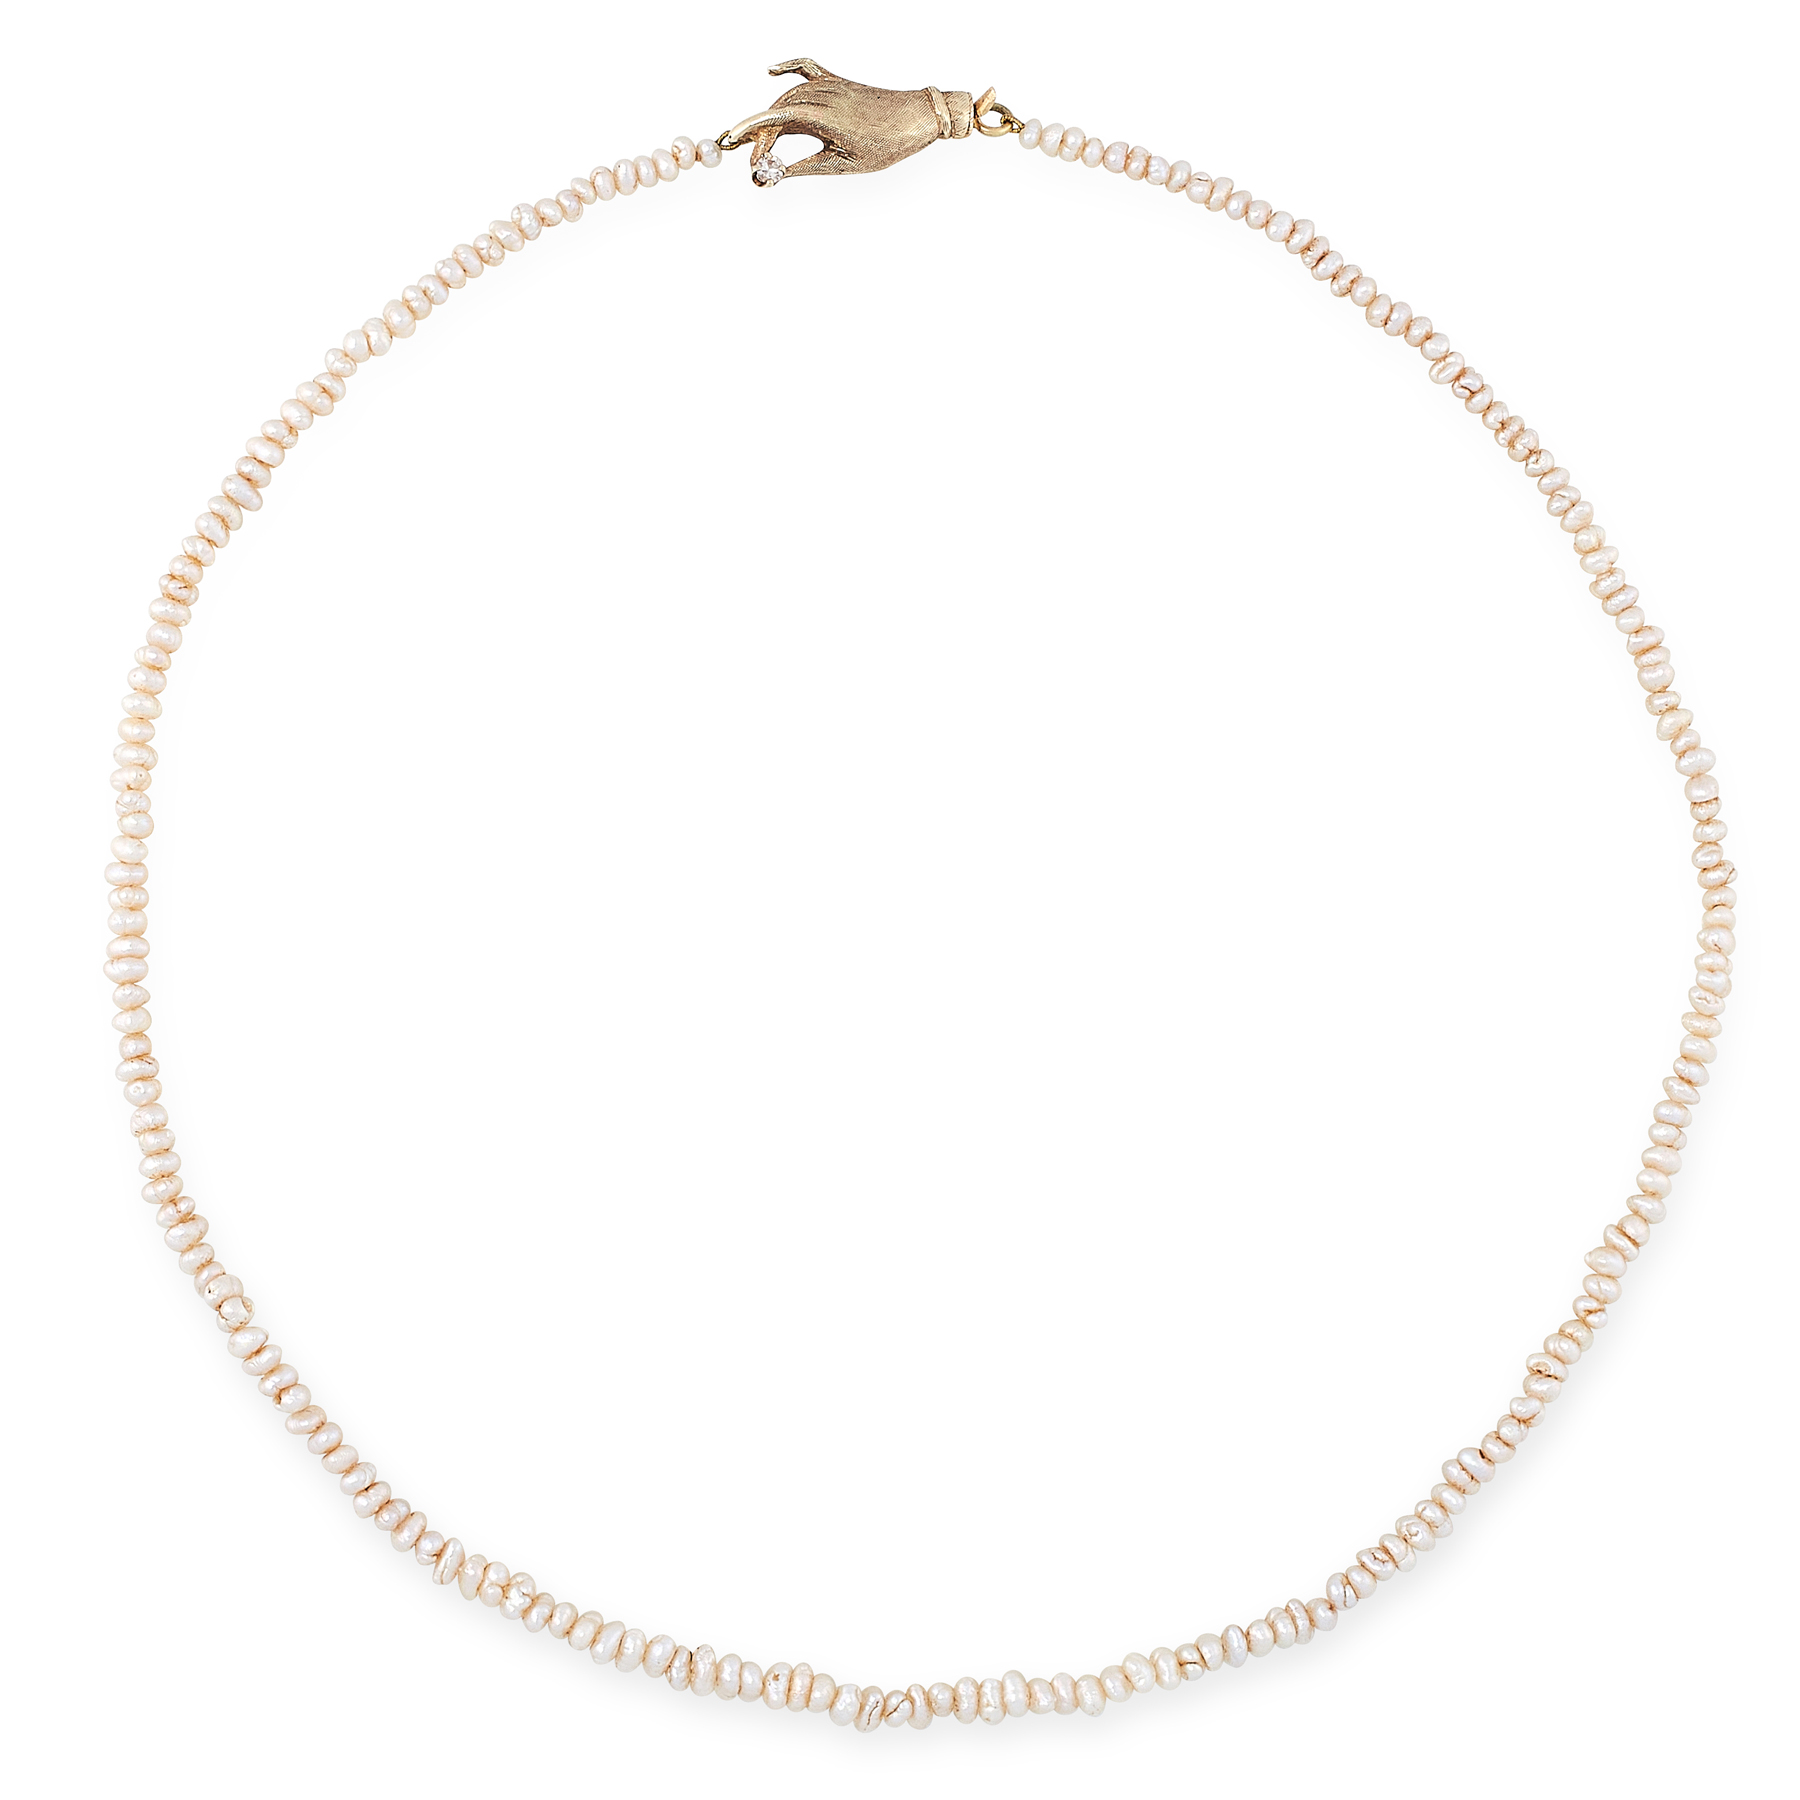 AN ANTIQUE SEED PEARL AND DIAMOND NECKLACE in yellow gold, comprising a single row of seed pearls,